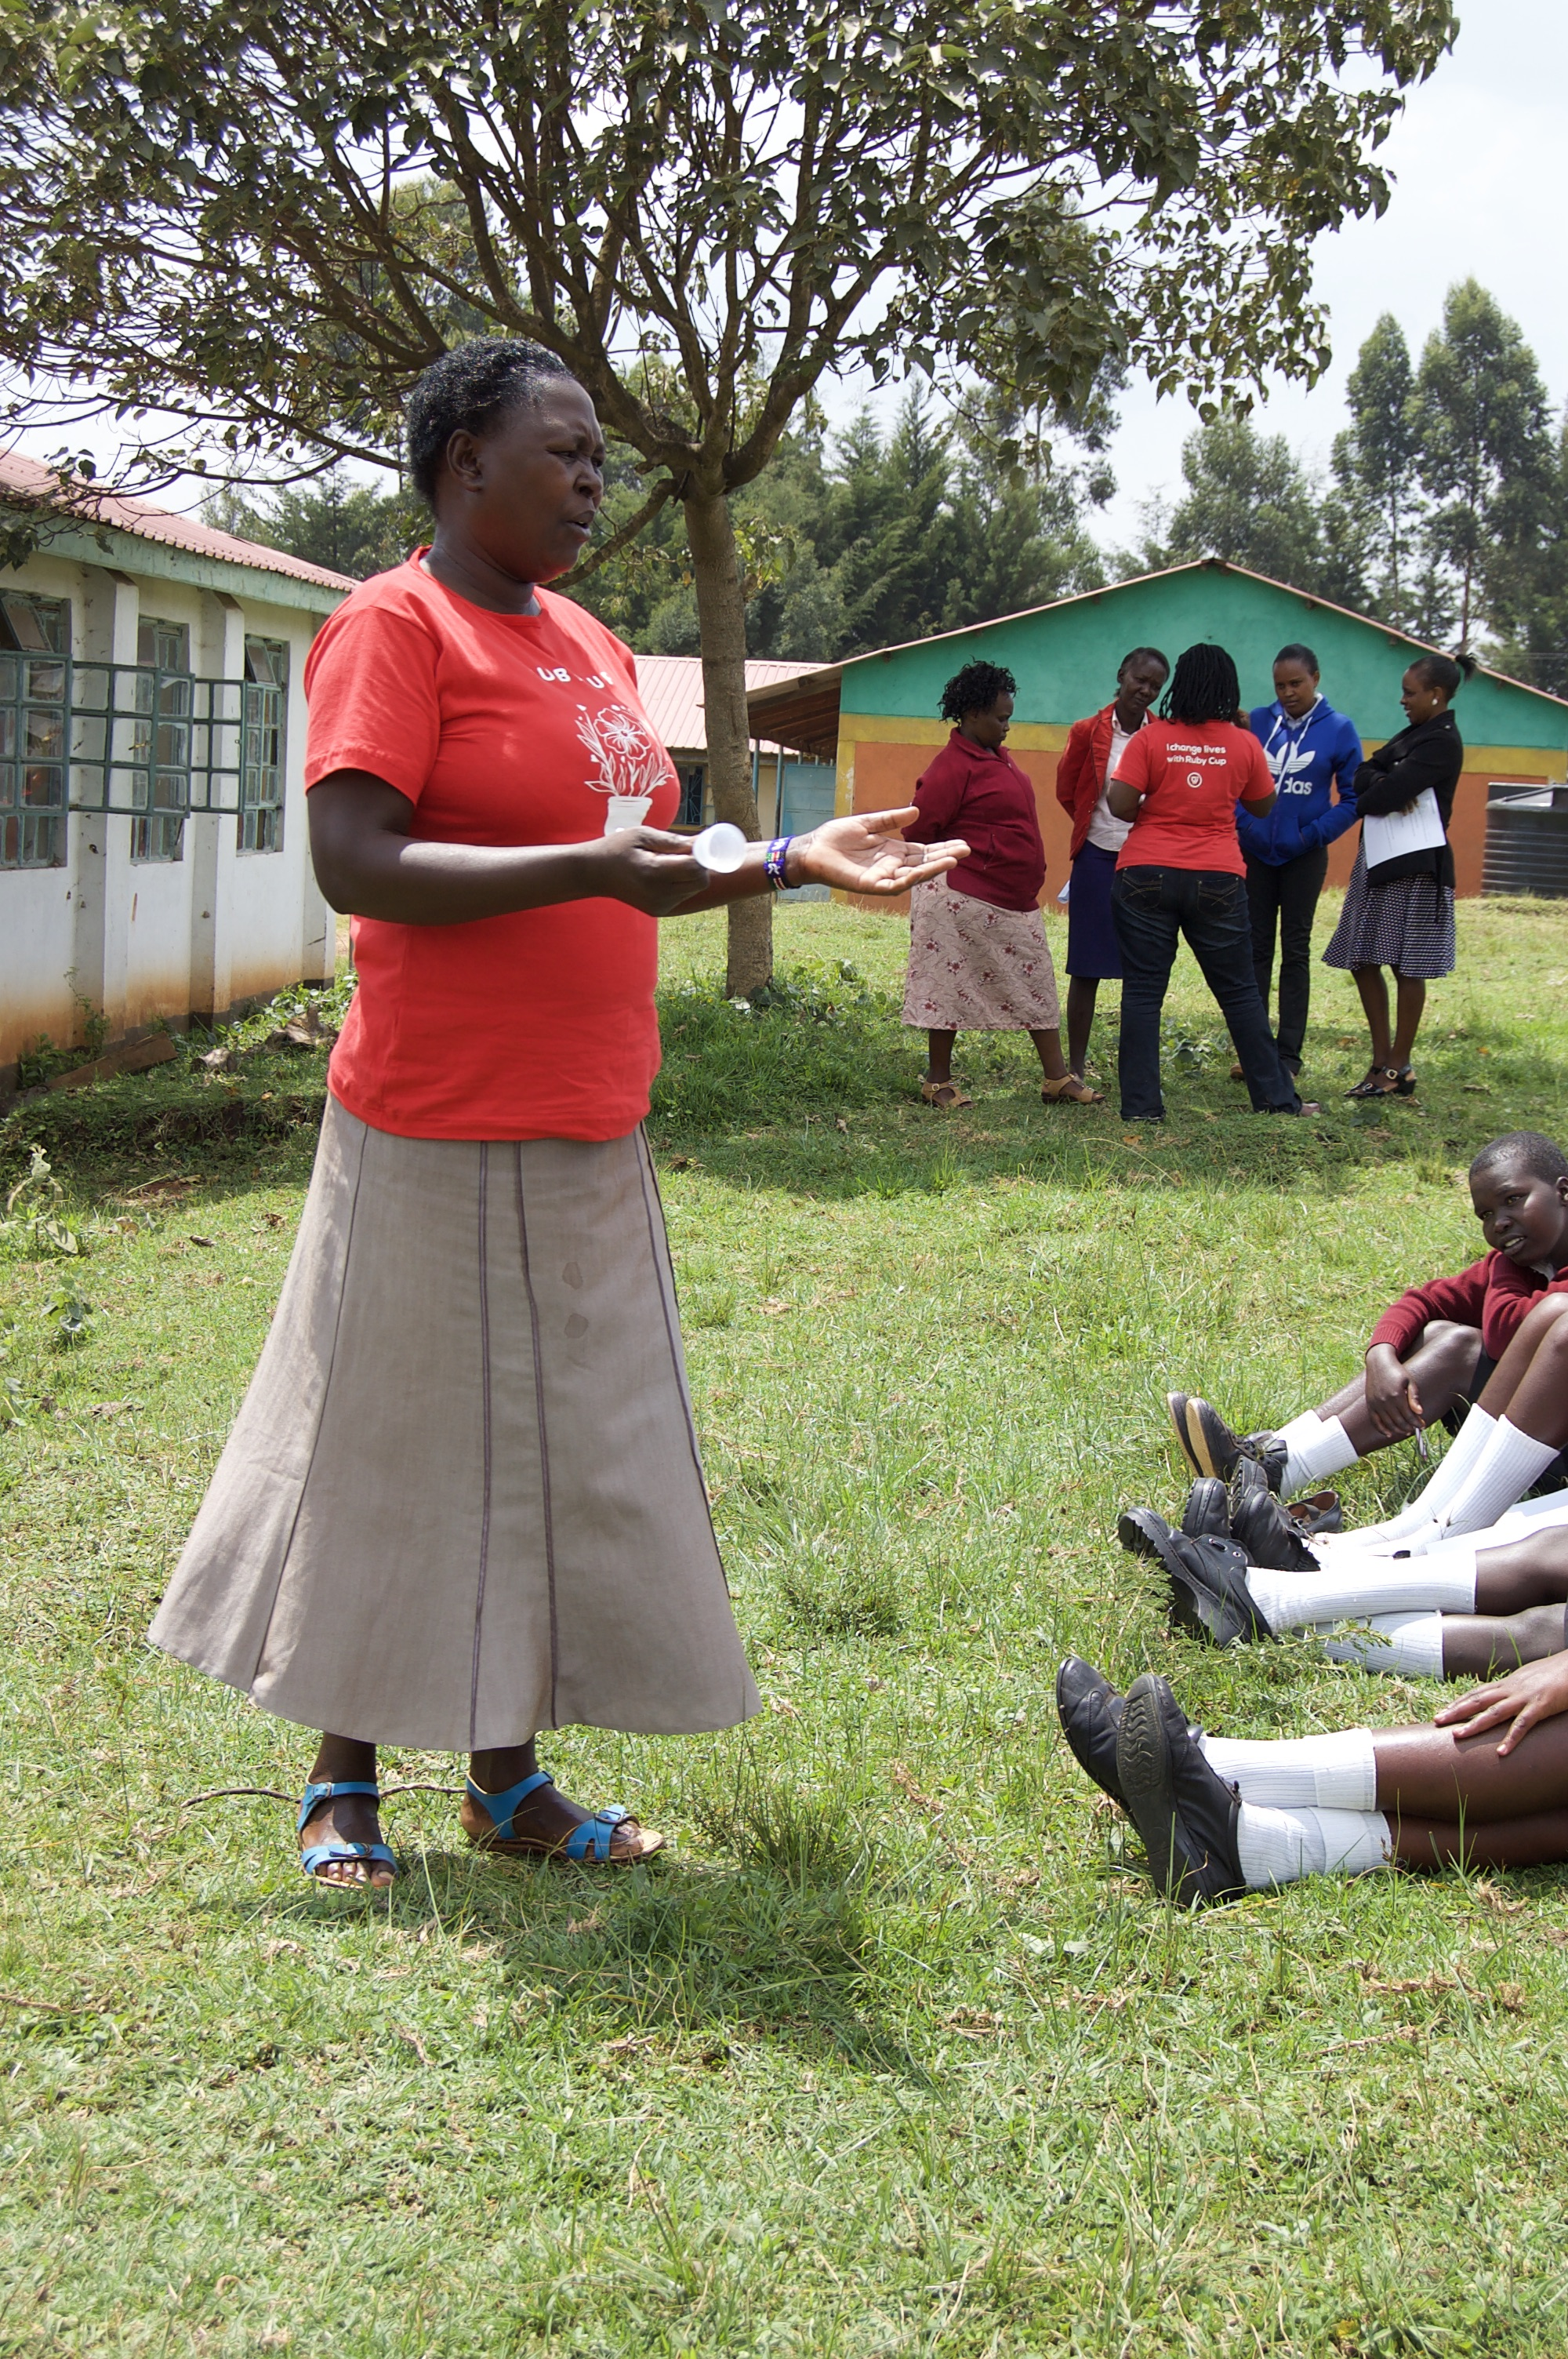 Miriam, a trained mentor from GGF,answers questions of how to use and care for the Ruby Cup.